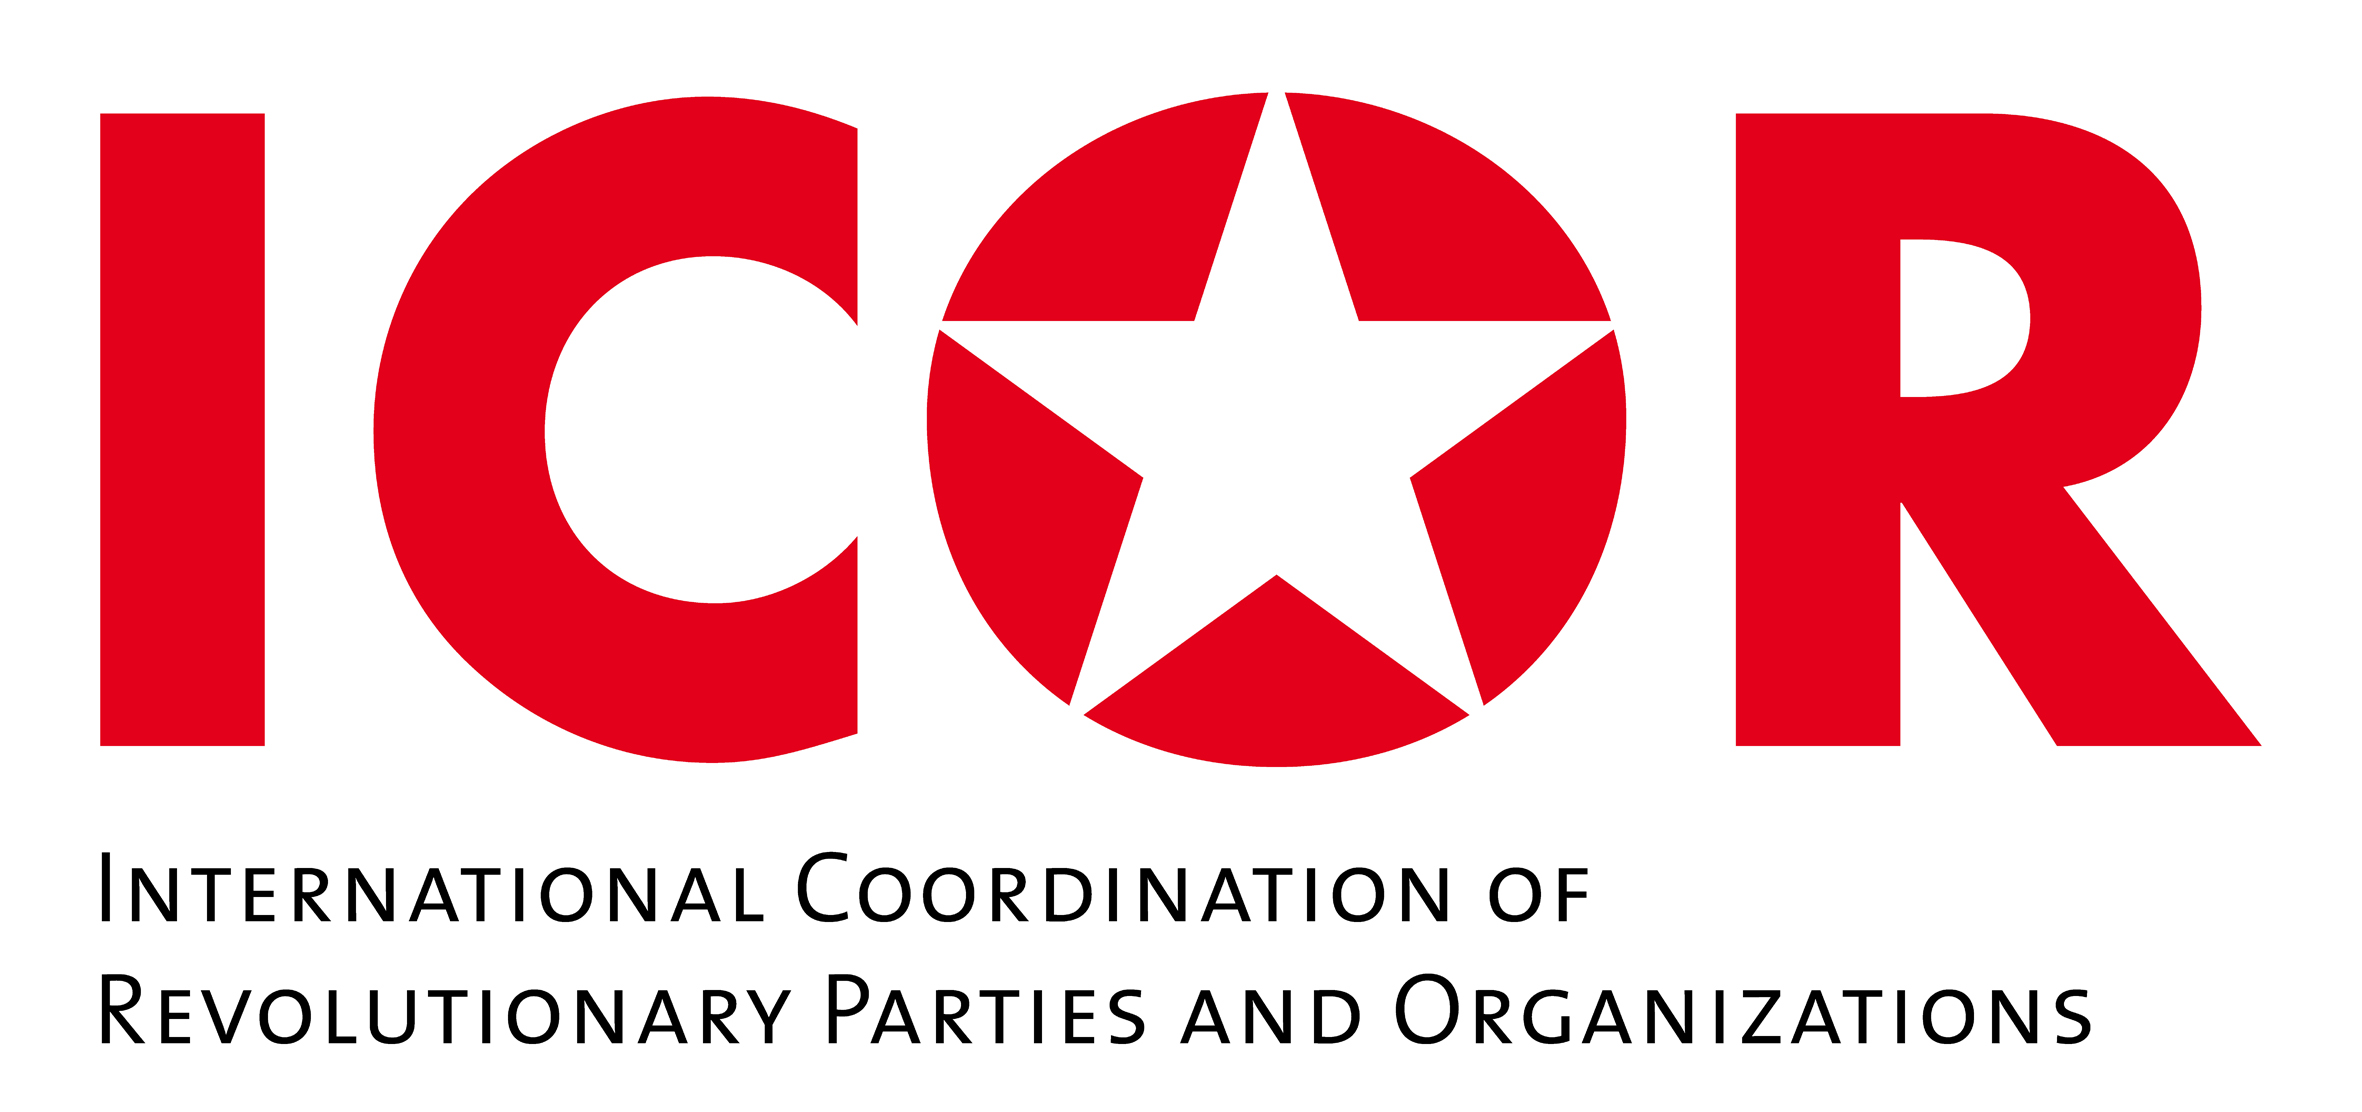 Principles of the participants of the ICOR solidarity brigades for the reconstruction in Kobanê